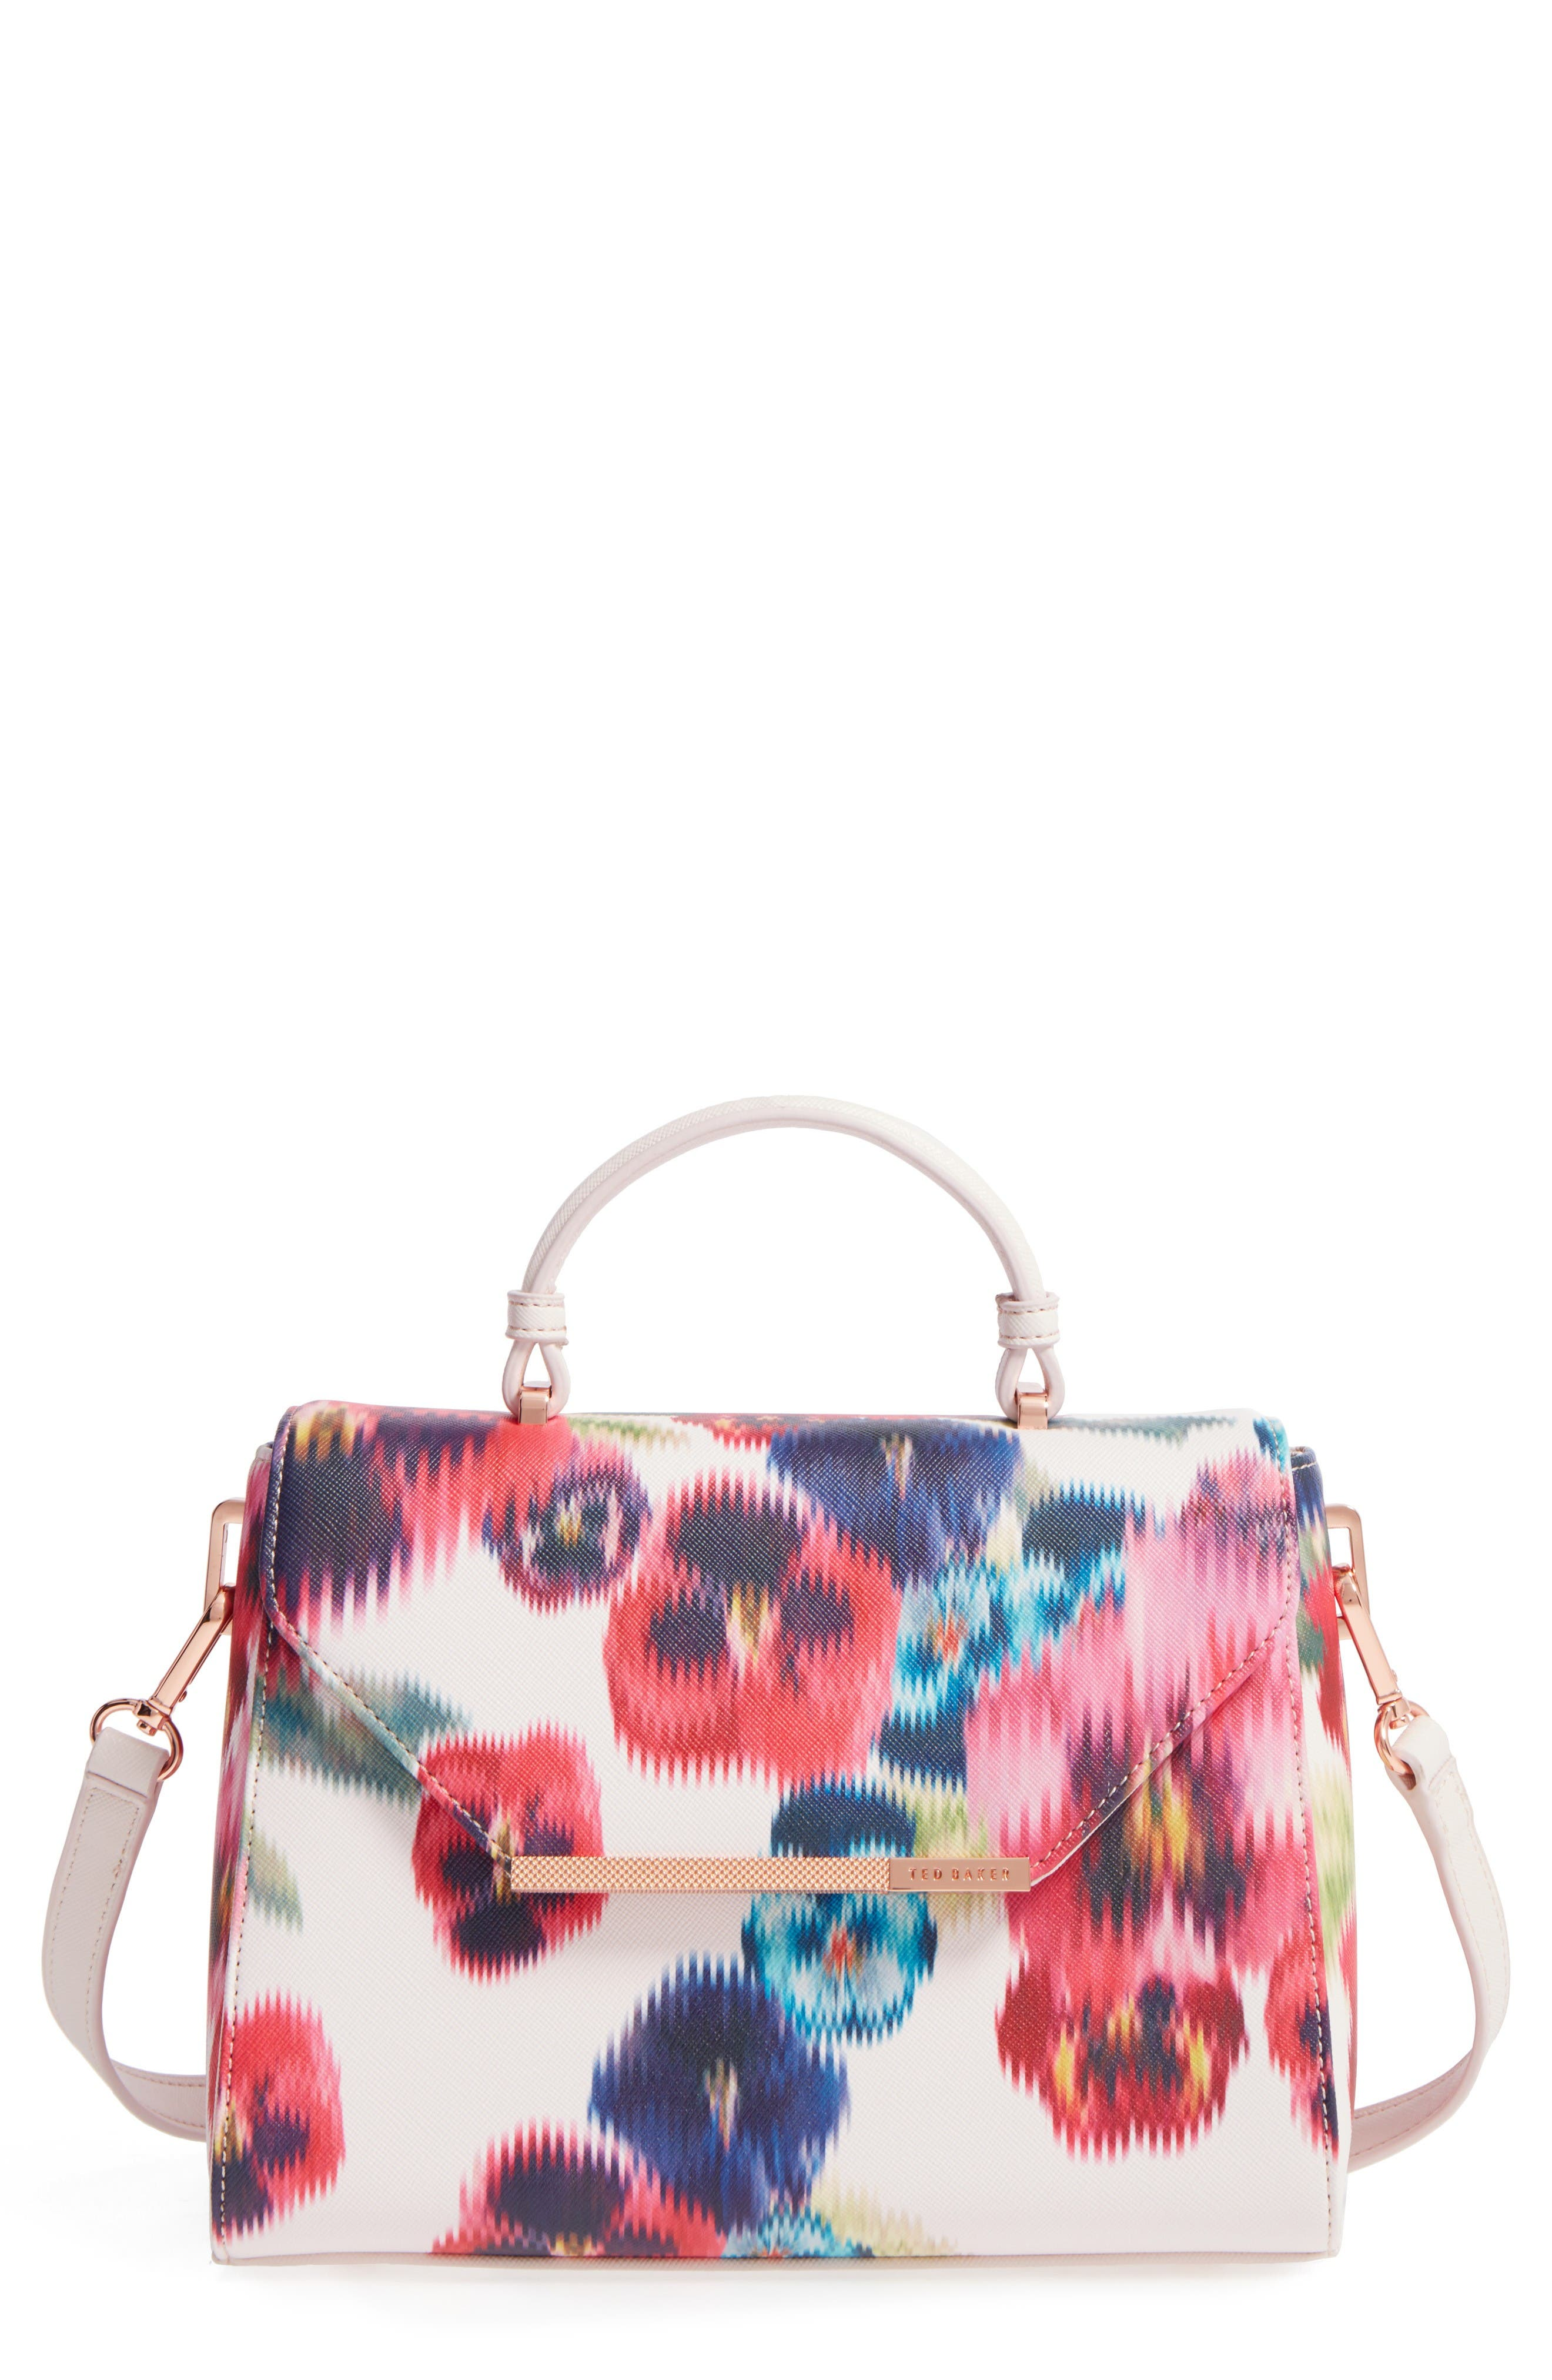 Main Image - Ted Baker London Expressive Pansy Faux Leather Top Handle Satchel